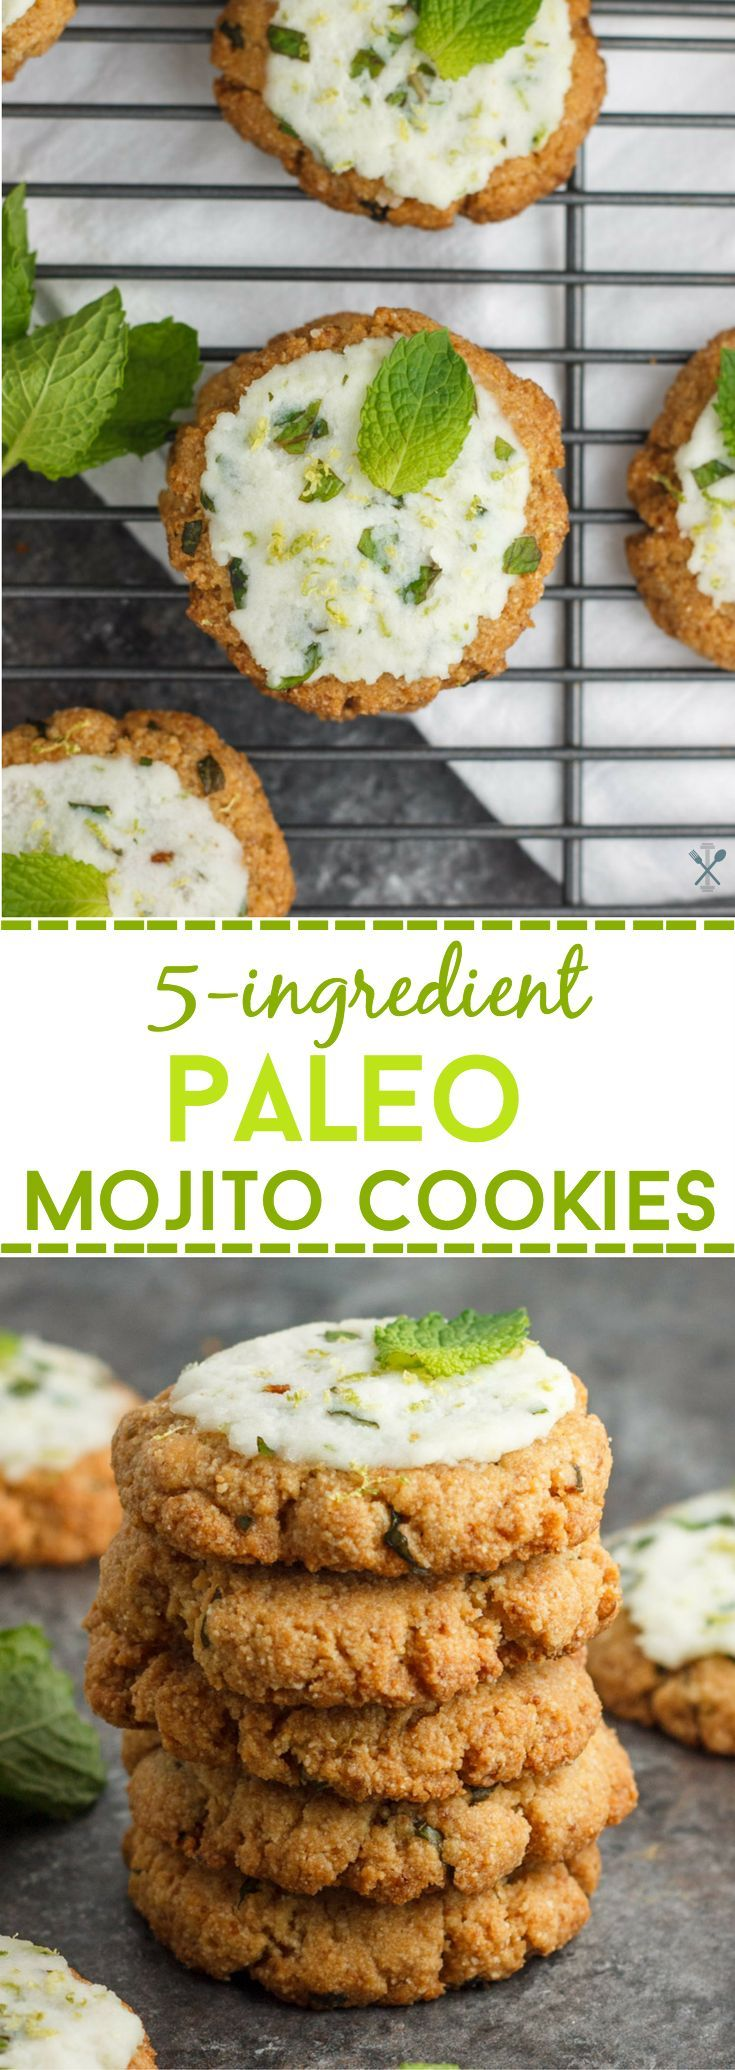 These 5-ingredient paleo mojito cookies are egg free, gluten free, and burning with hints of mint and lime - just like the classic mojito drink!